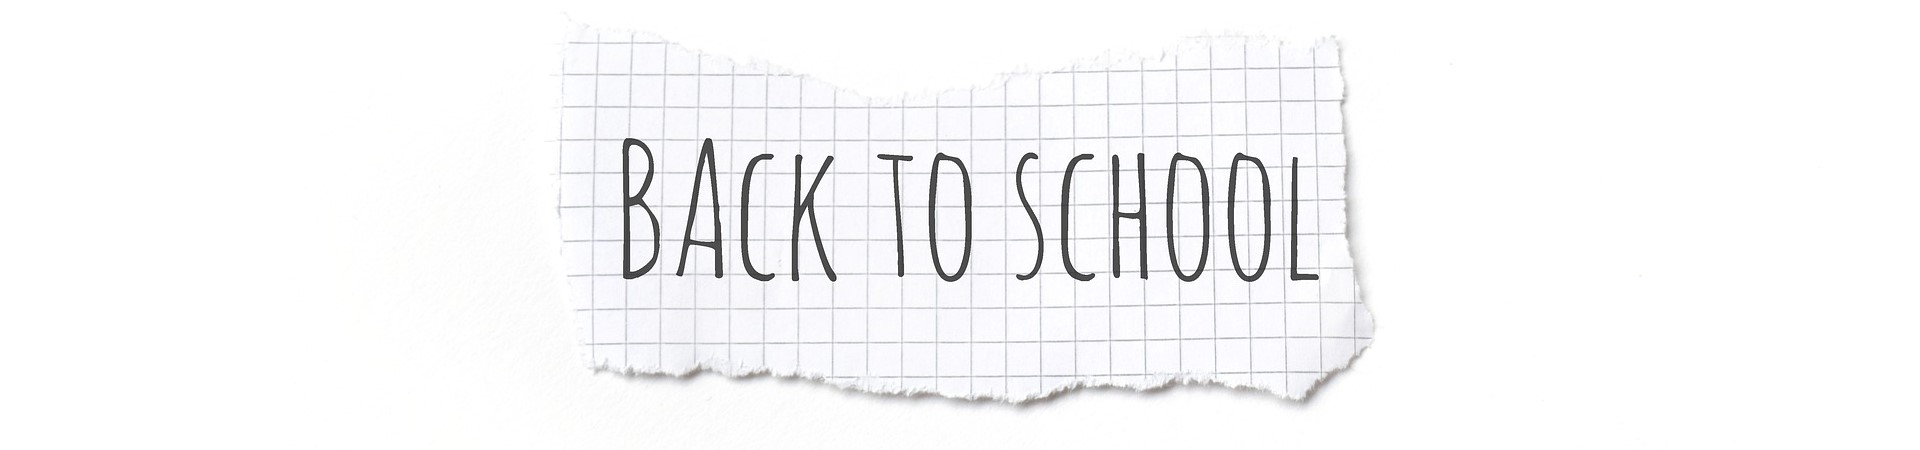 Back to School on a piece of paper